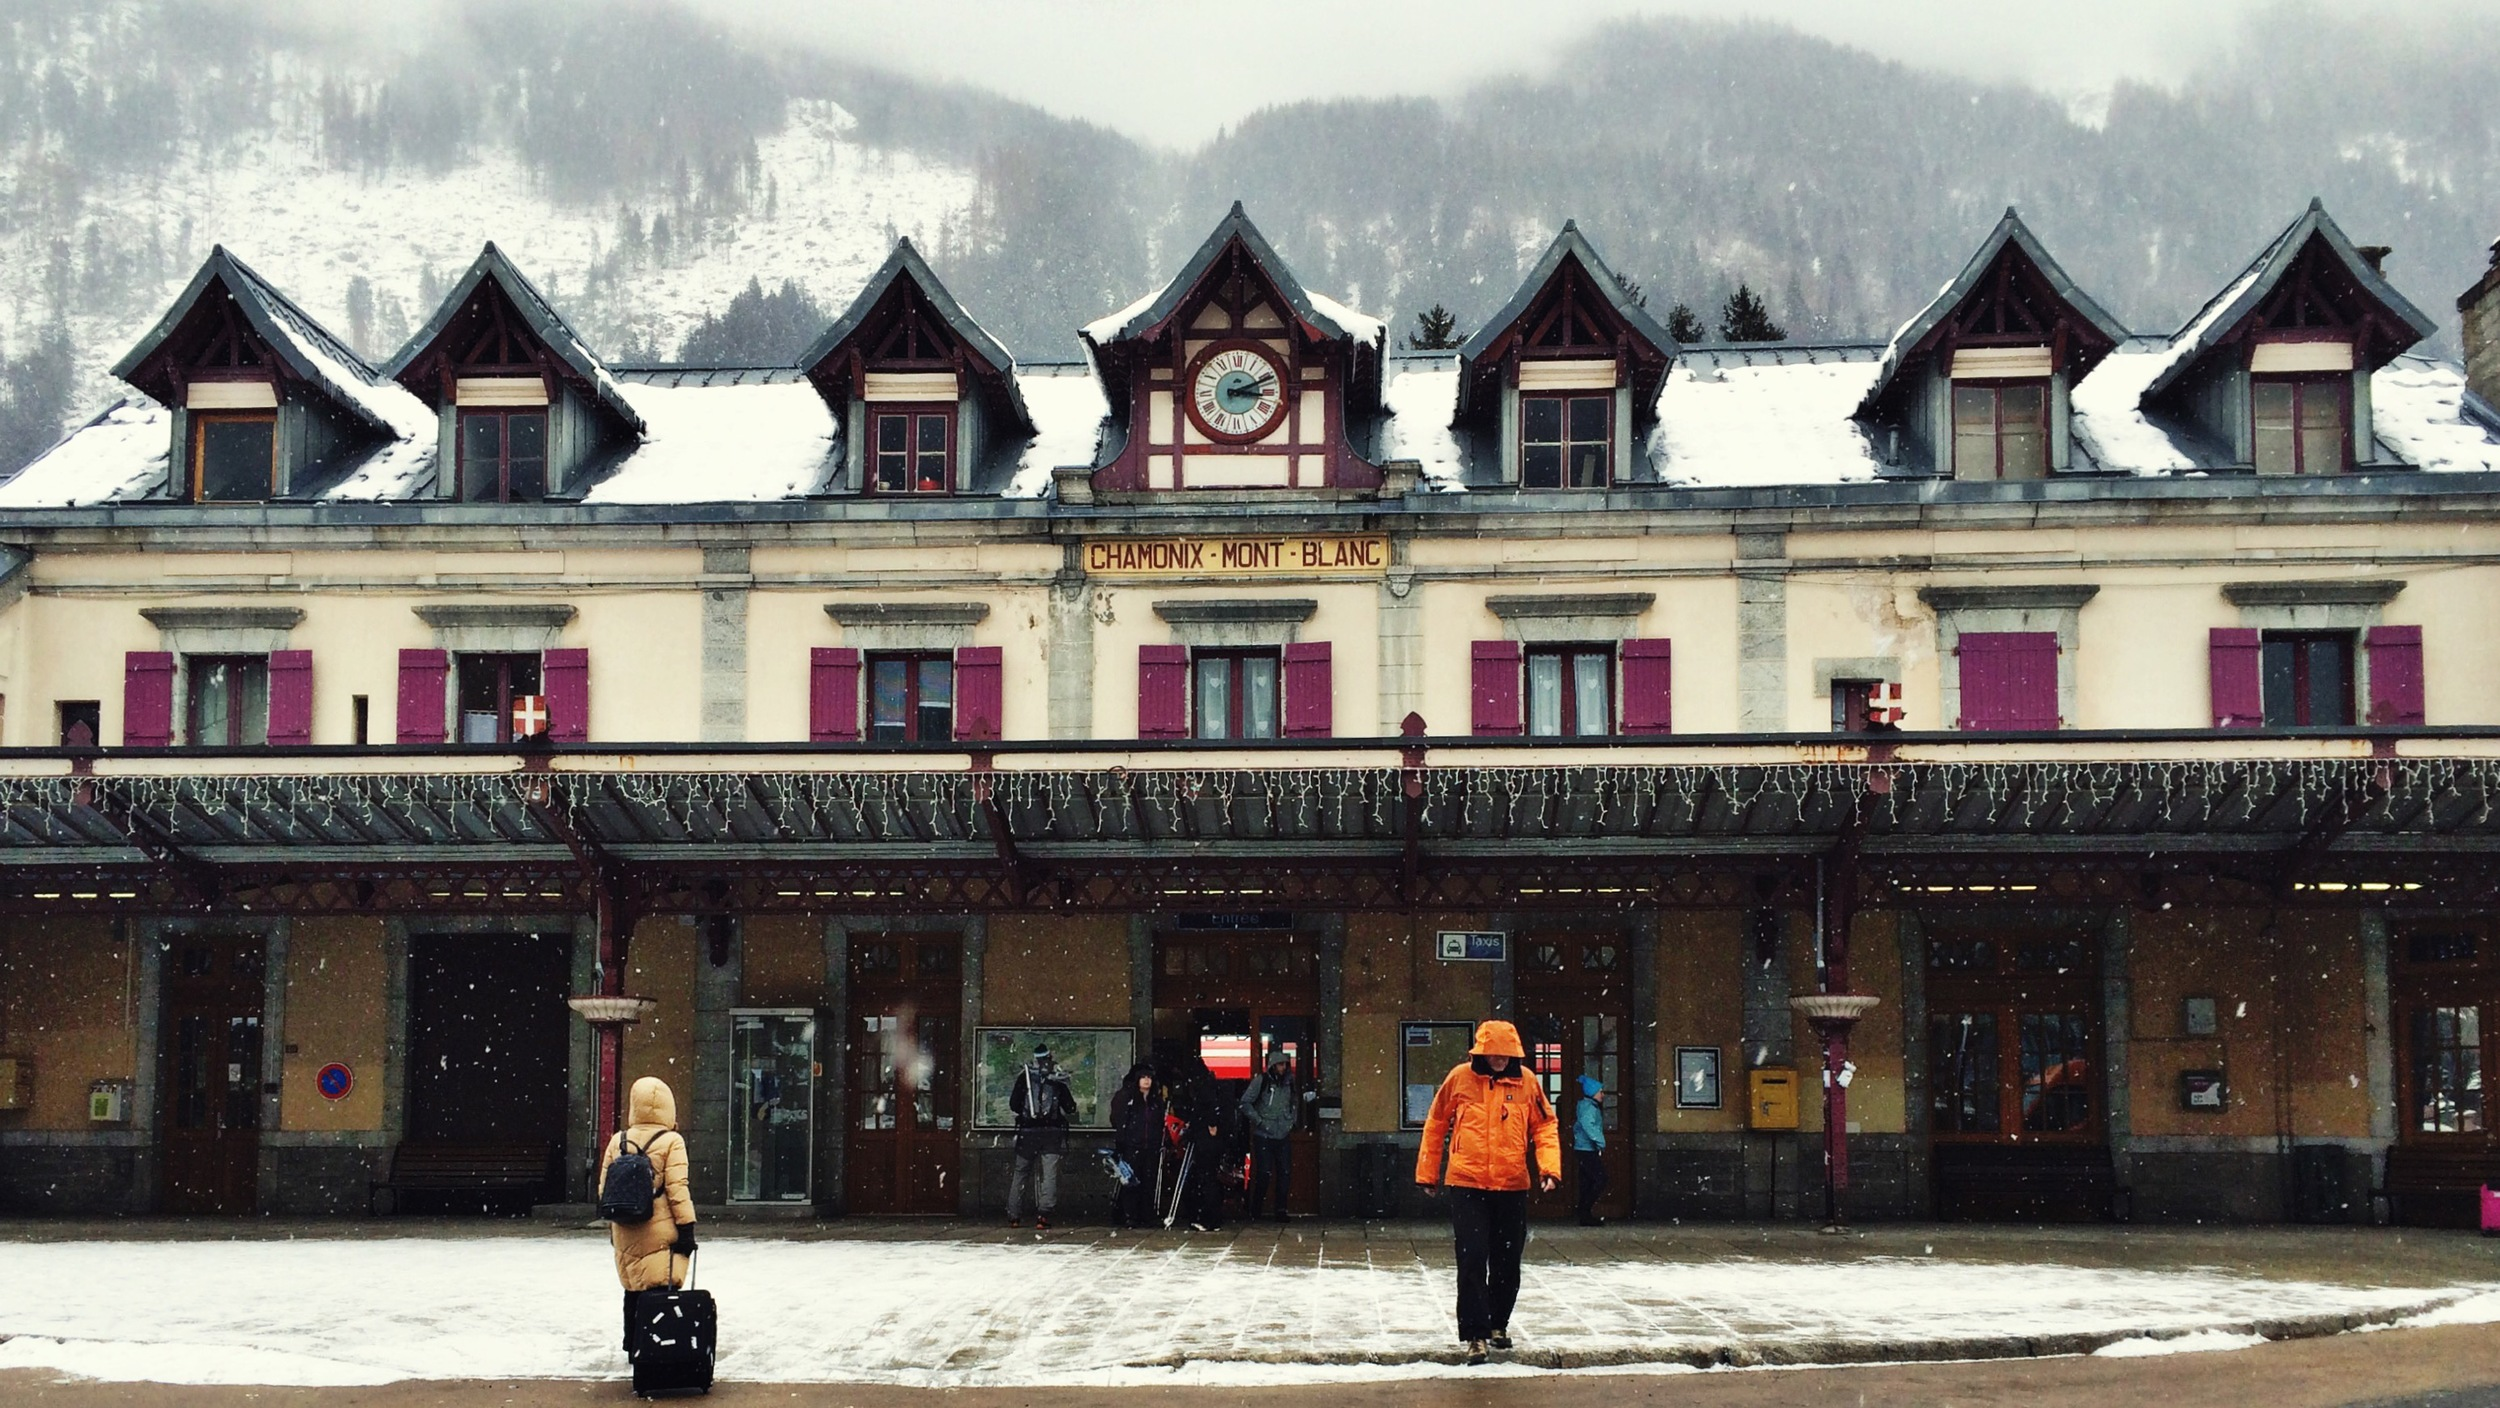 Look at that train station. What a dreamy town.